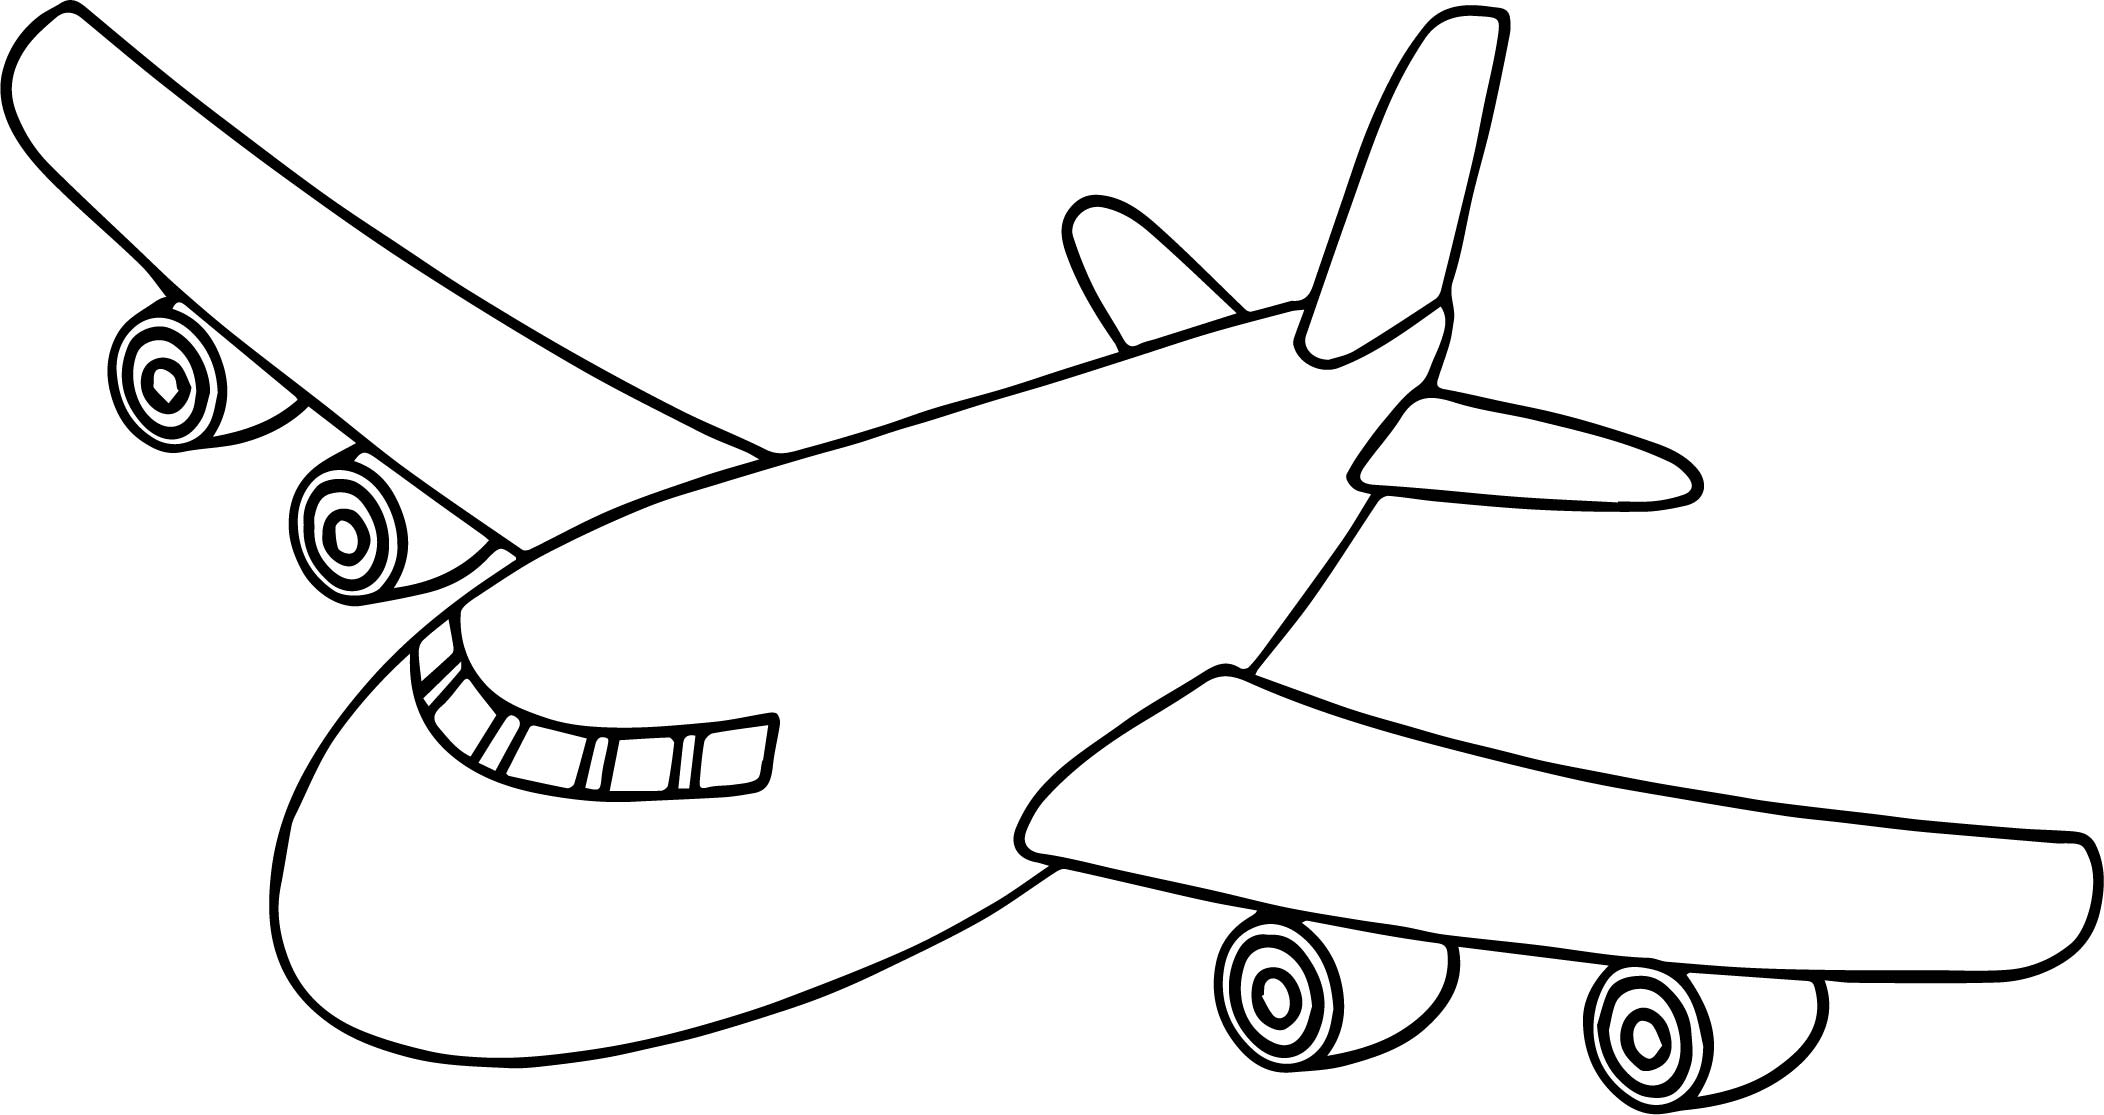 Coloring Pages Airplanes : Front airplane coloring page wecoloringpage